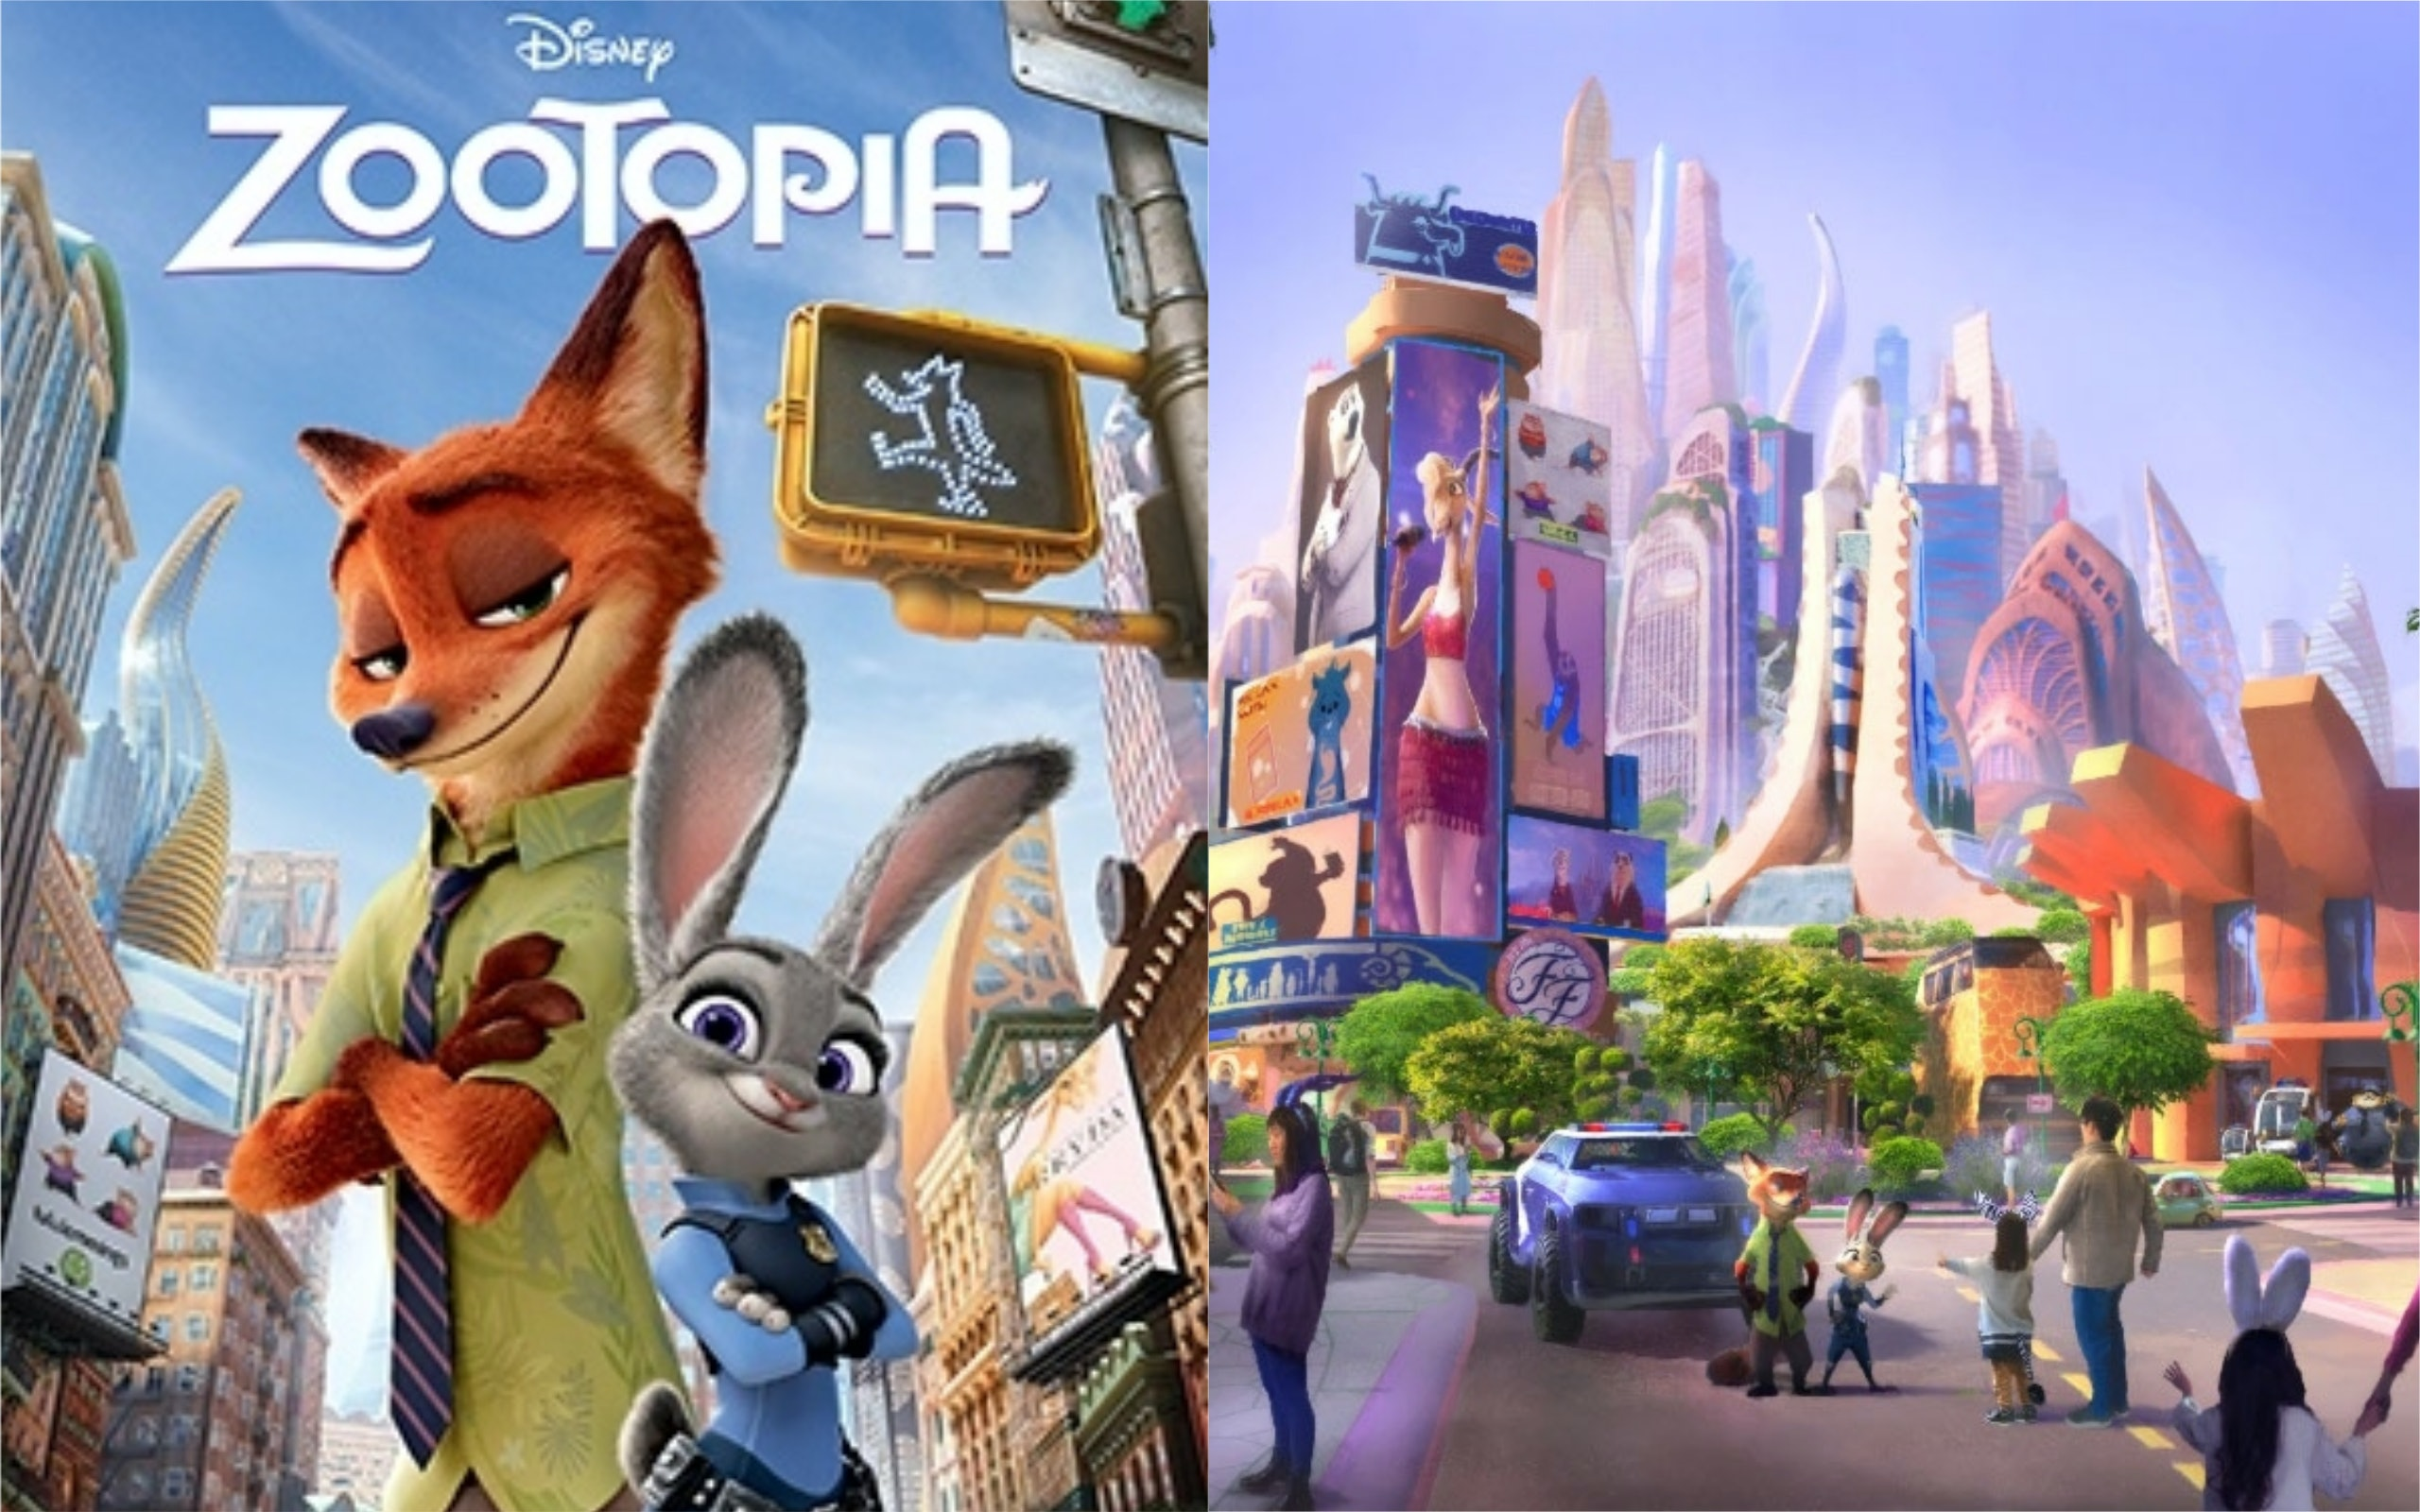 A 'Zootopia' World Is Coming T...